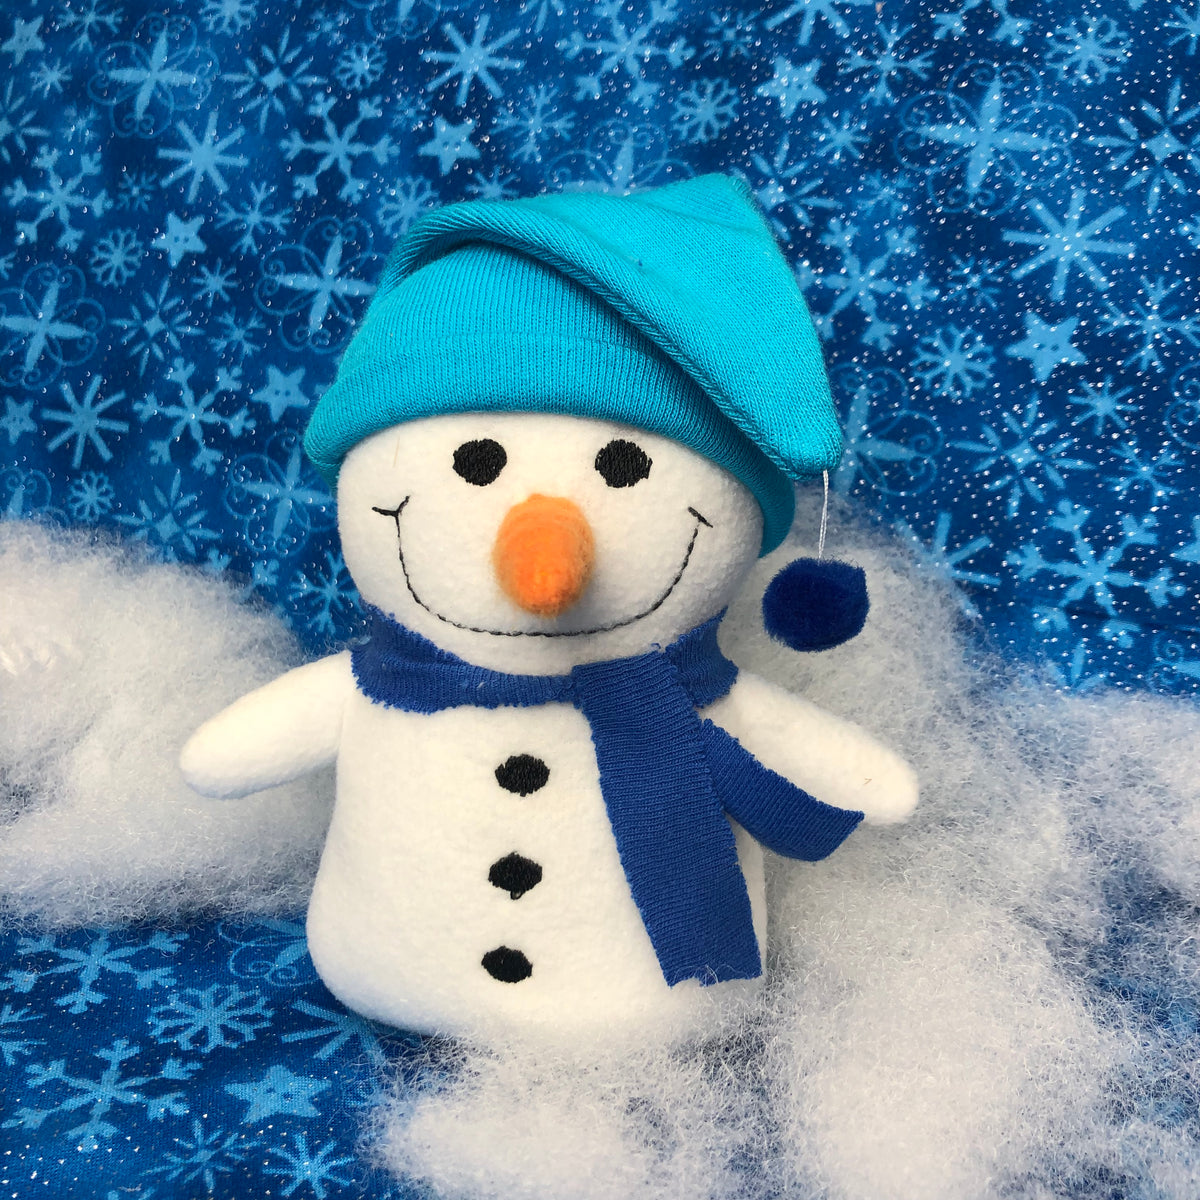 In The Hoop Crispin Everfrost Snowman Stuffy Toy For Use